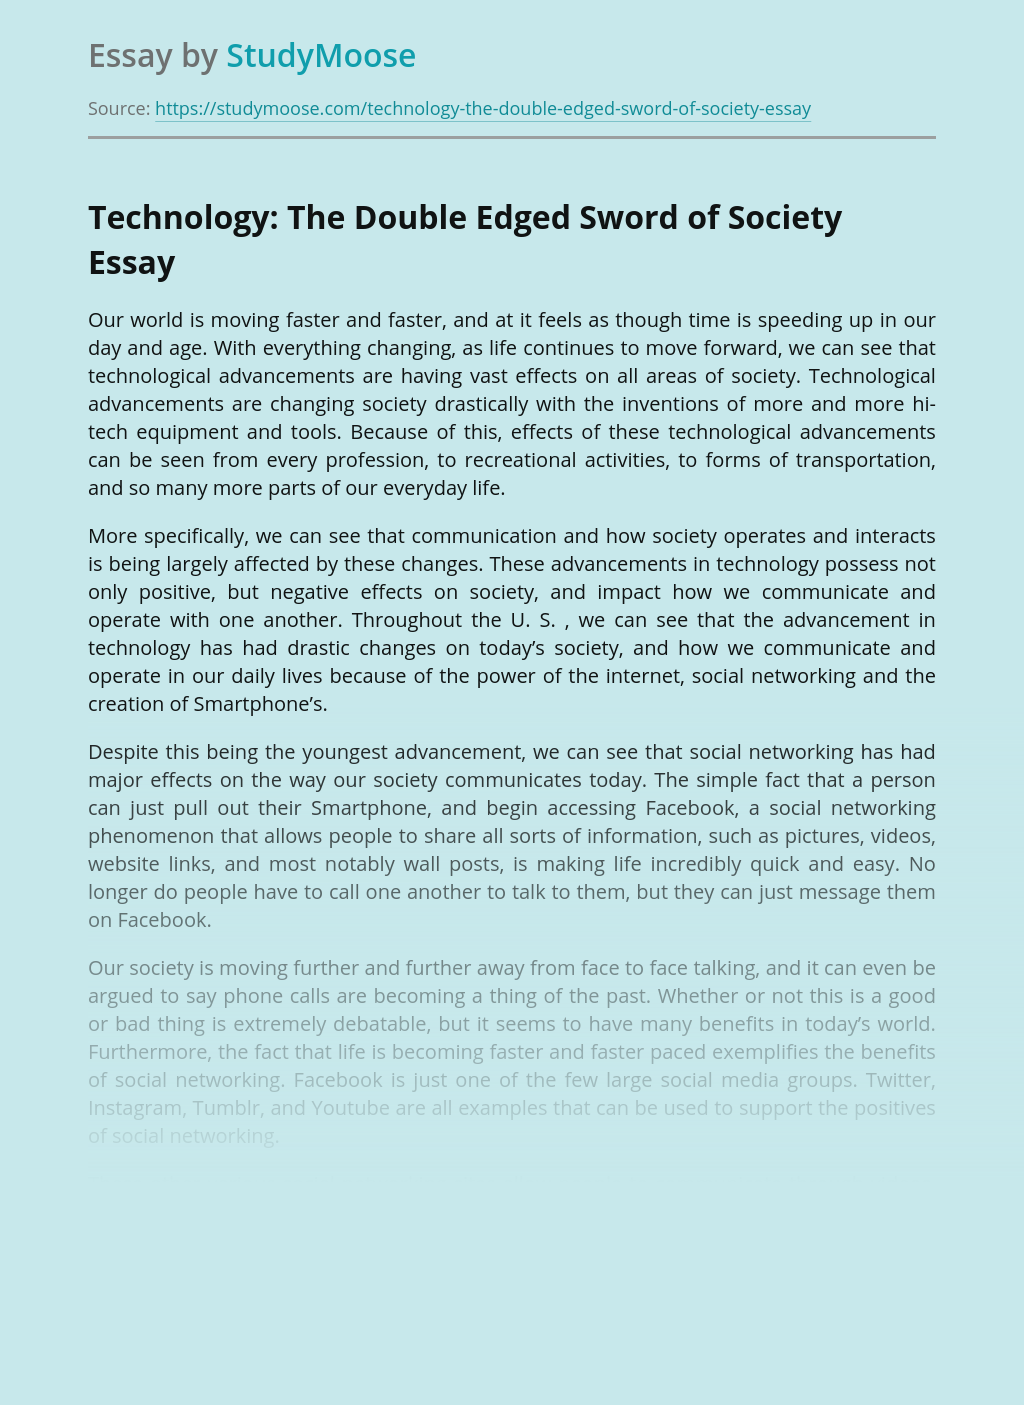 Technology: The Double Edged Sword of Society